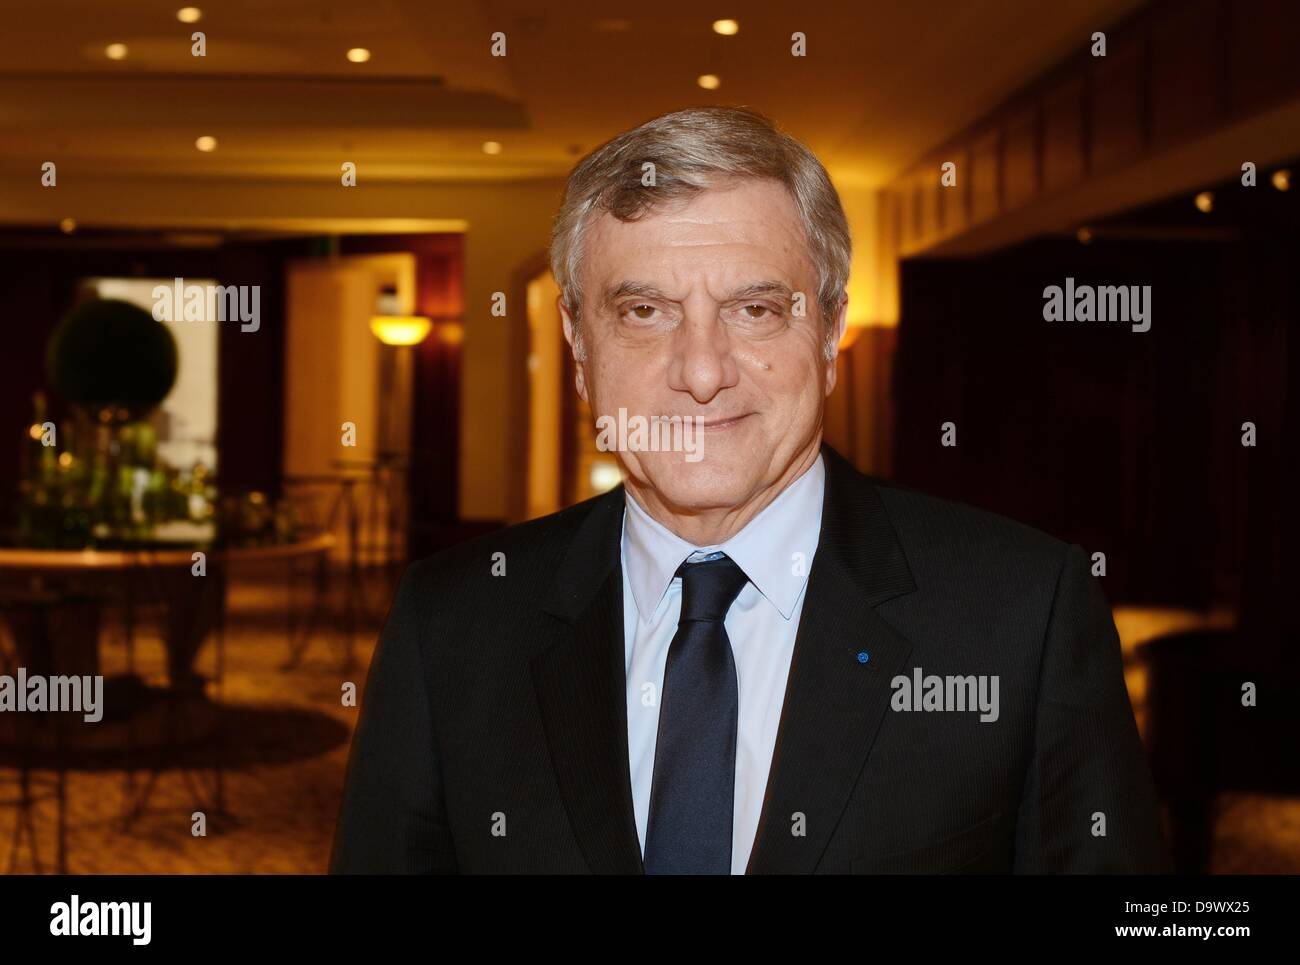 The CEO of Christian Dior S A  and president of Christian Dior Stock